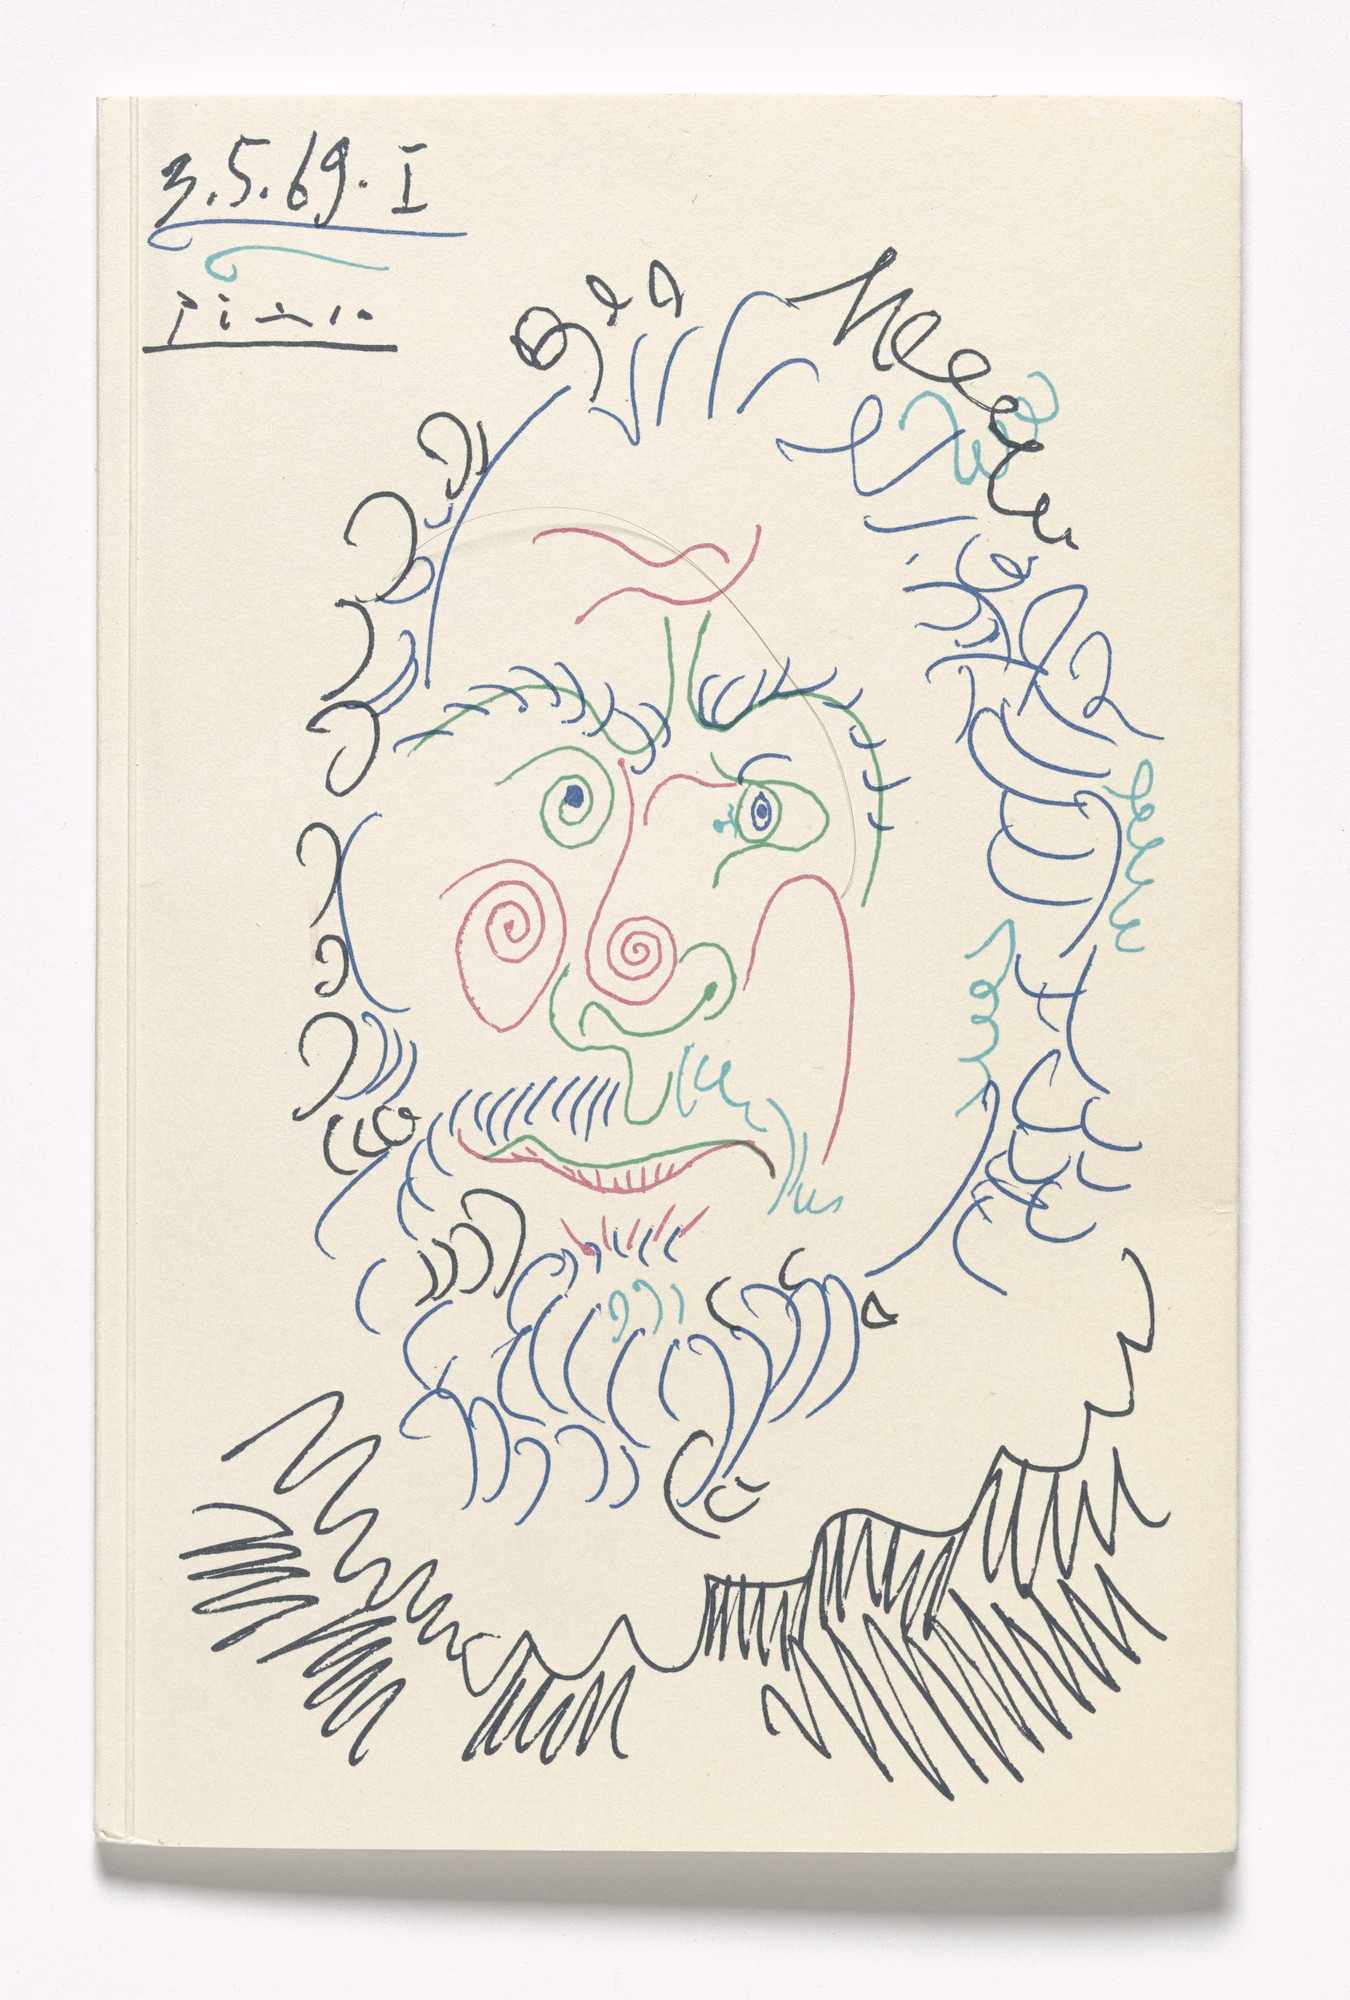 Pablo Picasso. Untitled. 1969